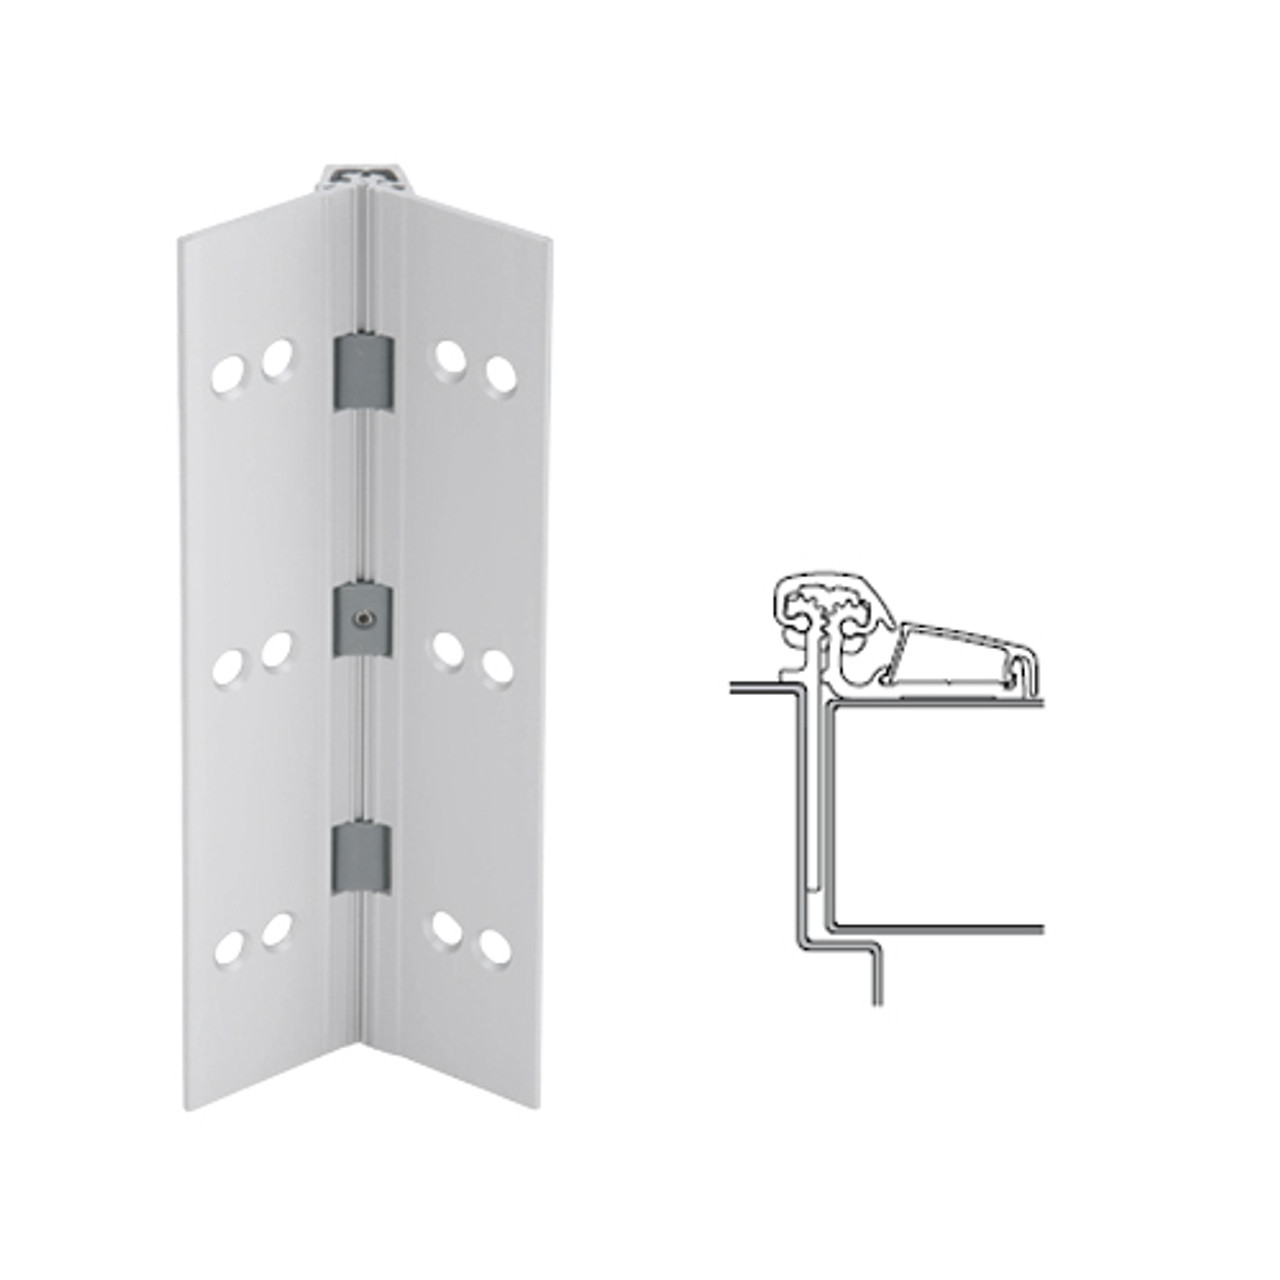 053XY-US28-83-SECHM IVES Adjustable Half Surface Continuous Geared Hinges with Security Screws - Hex Pin Drive in Satin Aluminum